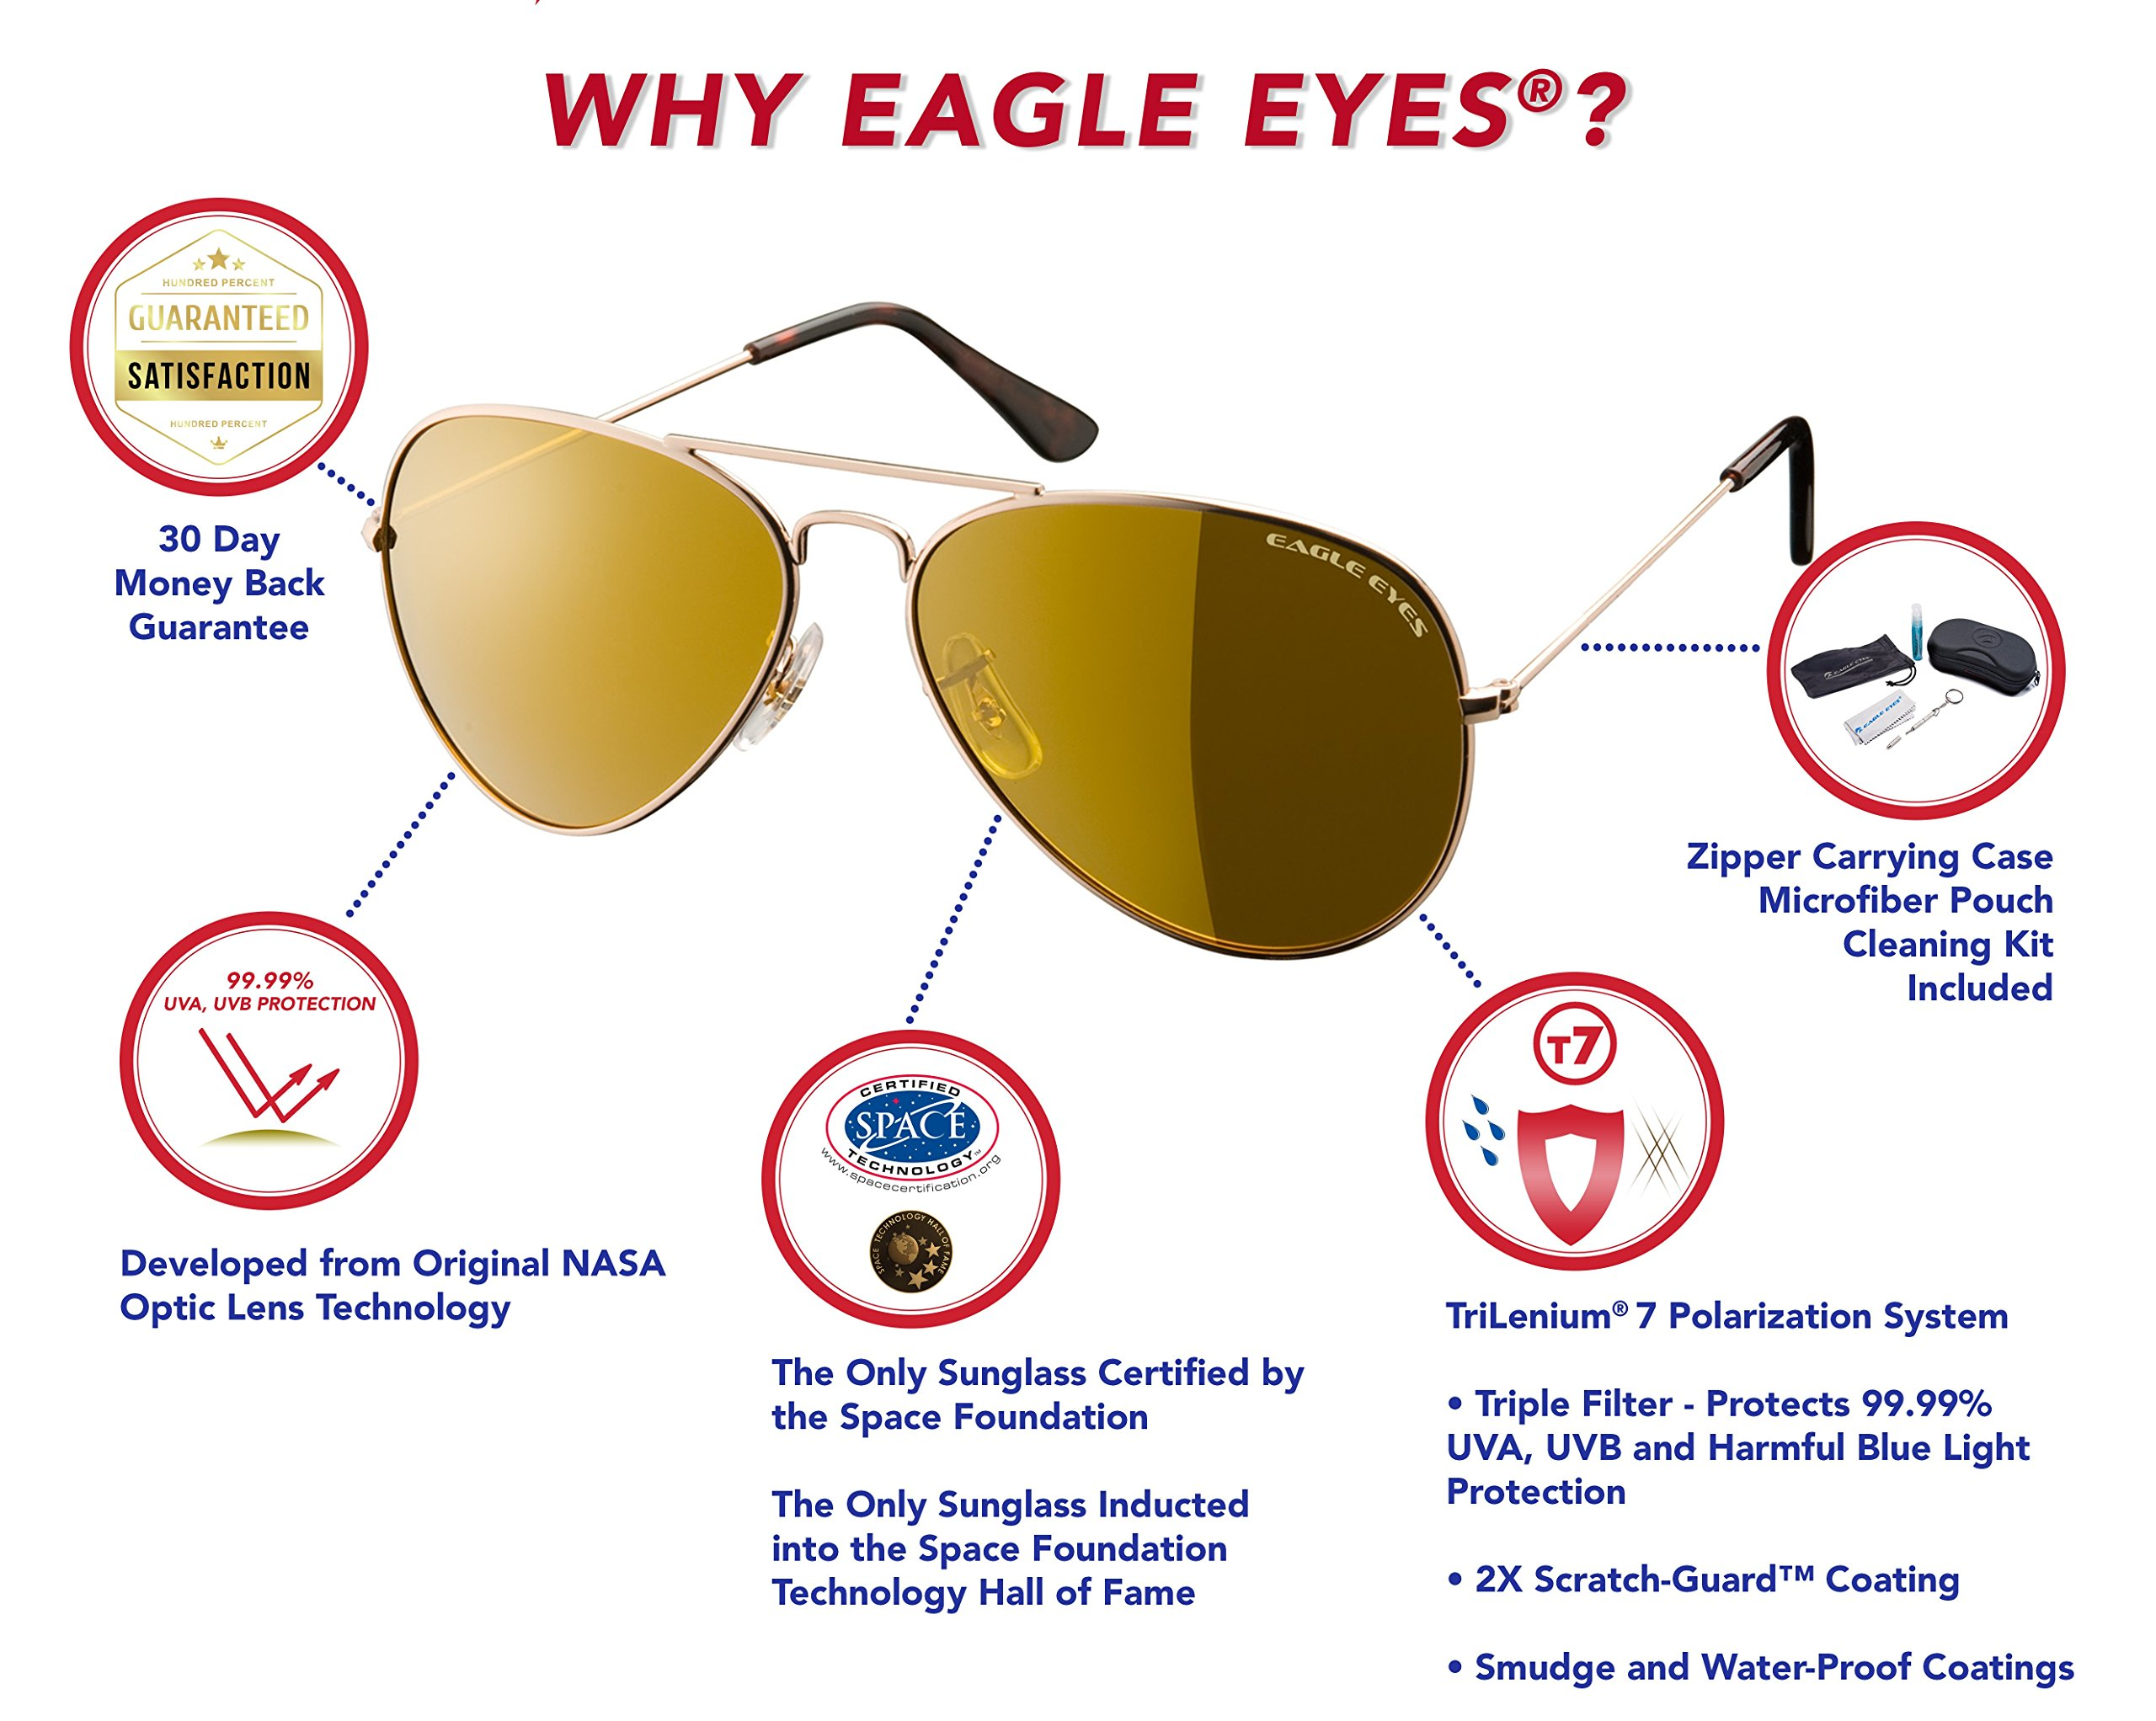 027dbf50446 Details about Eagle Eyes CLASSIC AVIATOR Sunglasses -Silver Stainless Steel  Frame (58mm)